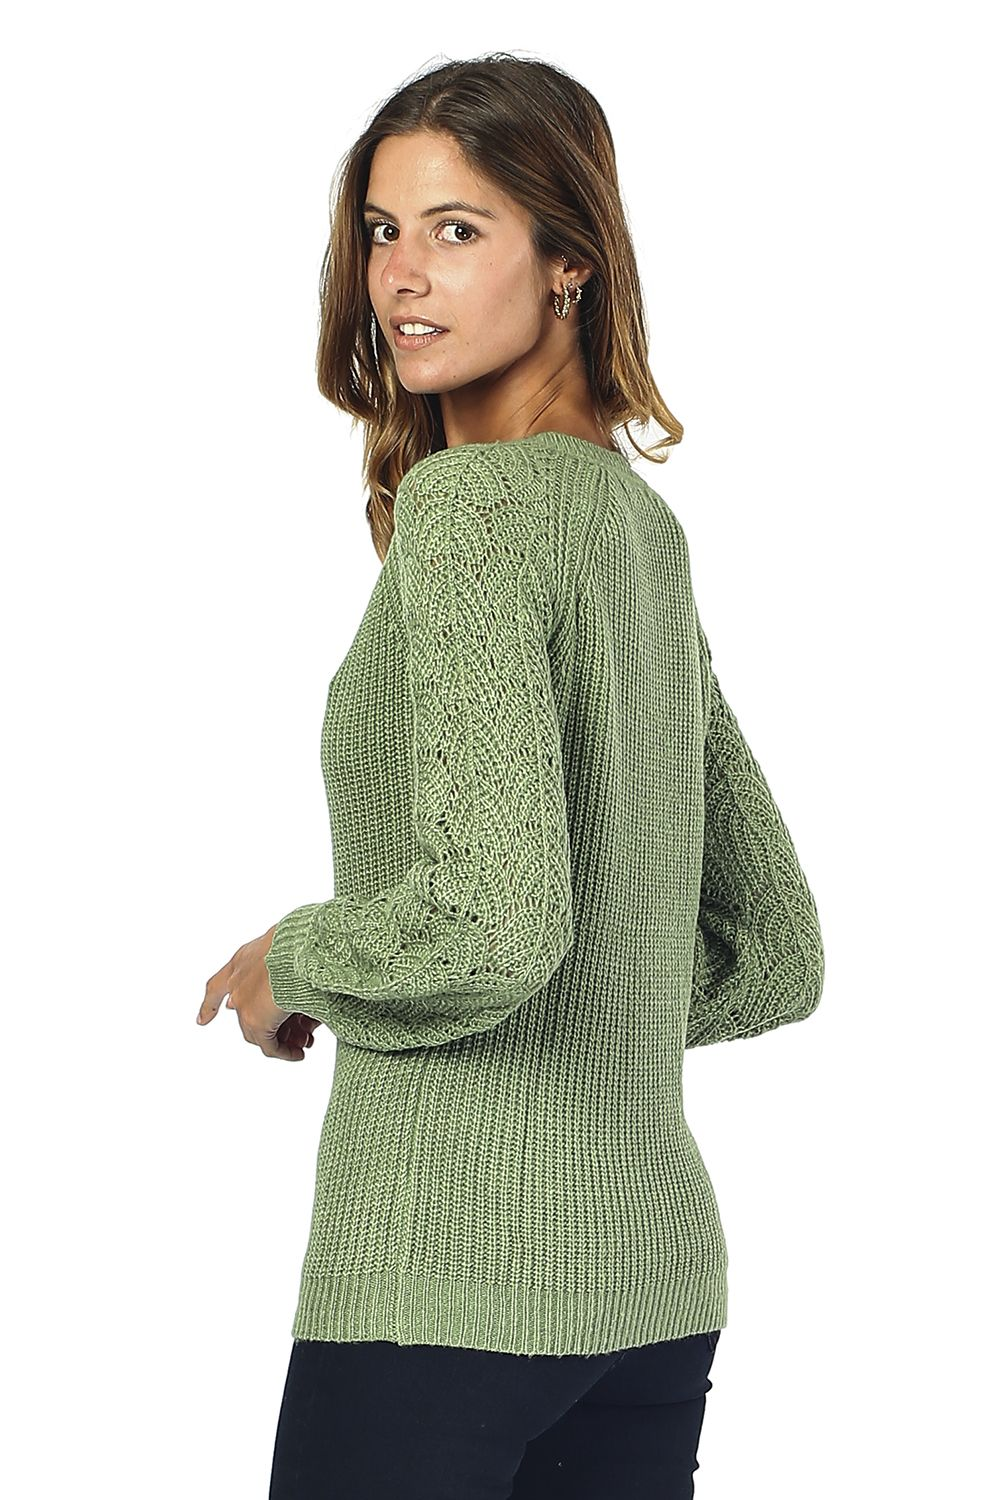 William De Faye V-neck Sweater with Open Stitch-work Sleeves in Green